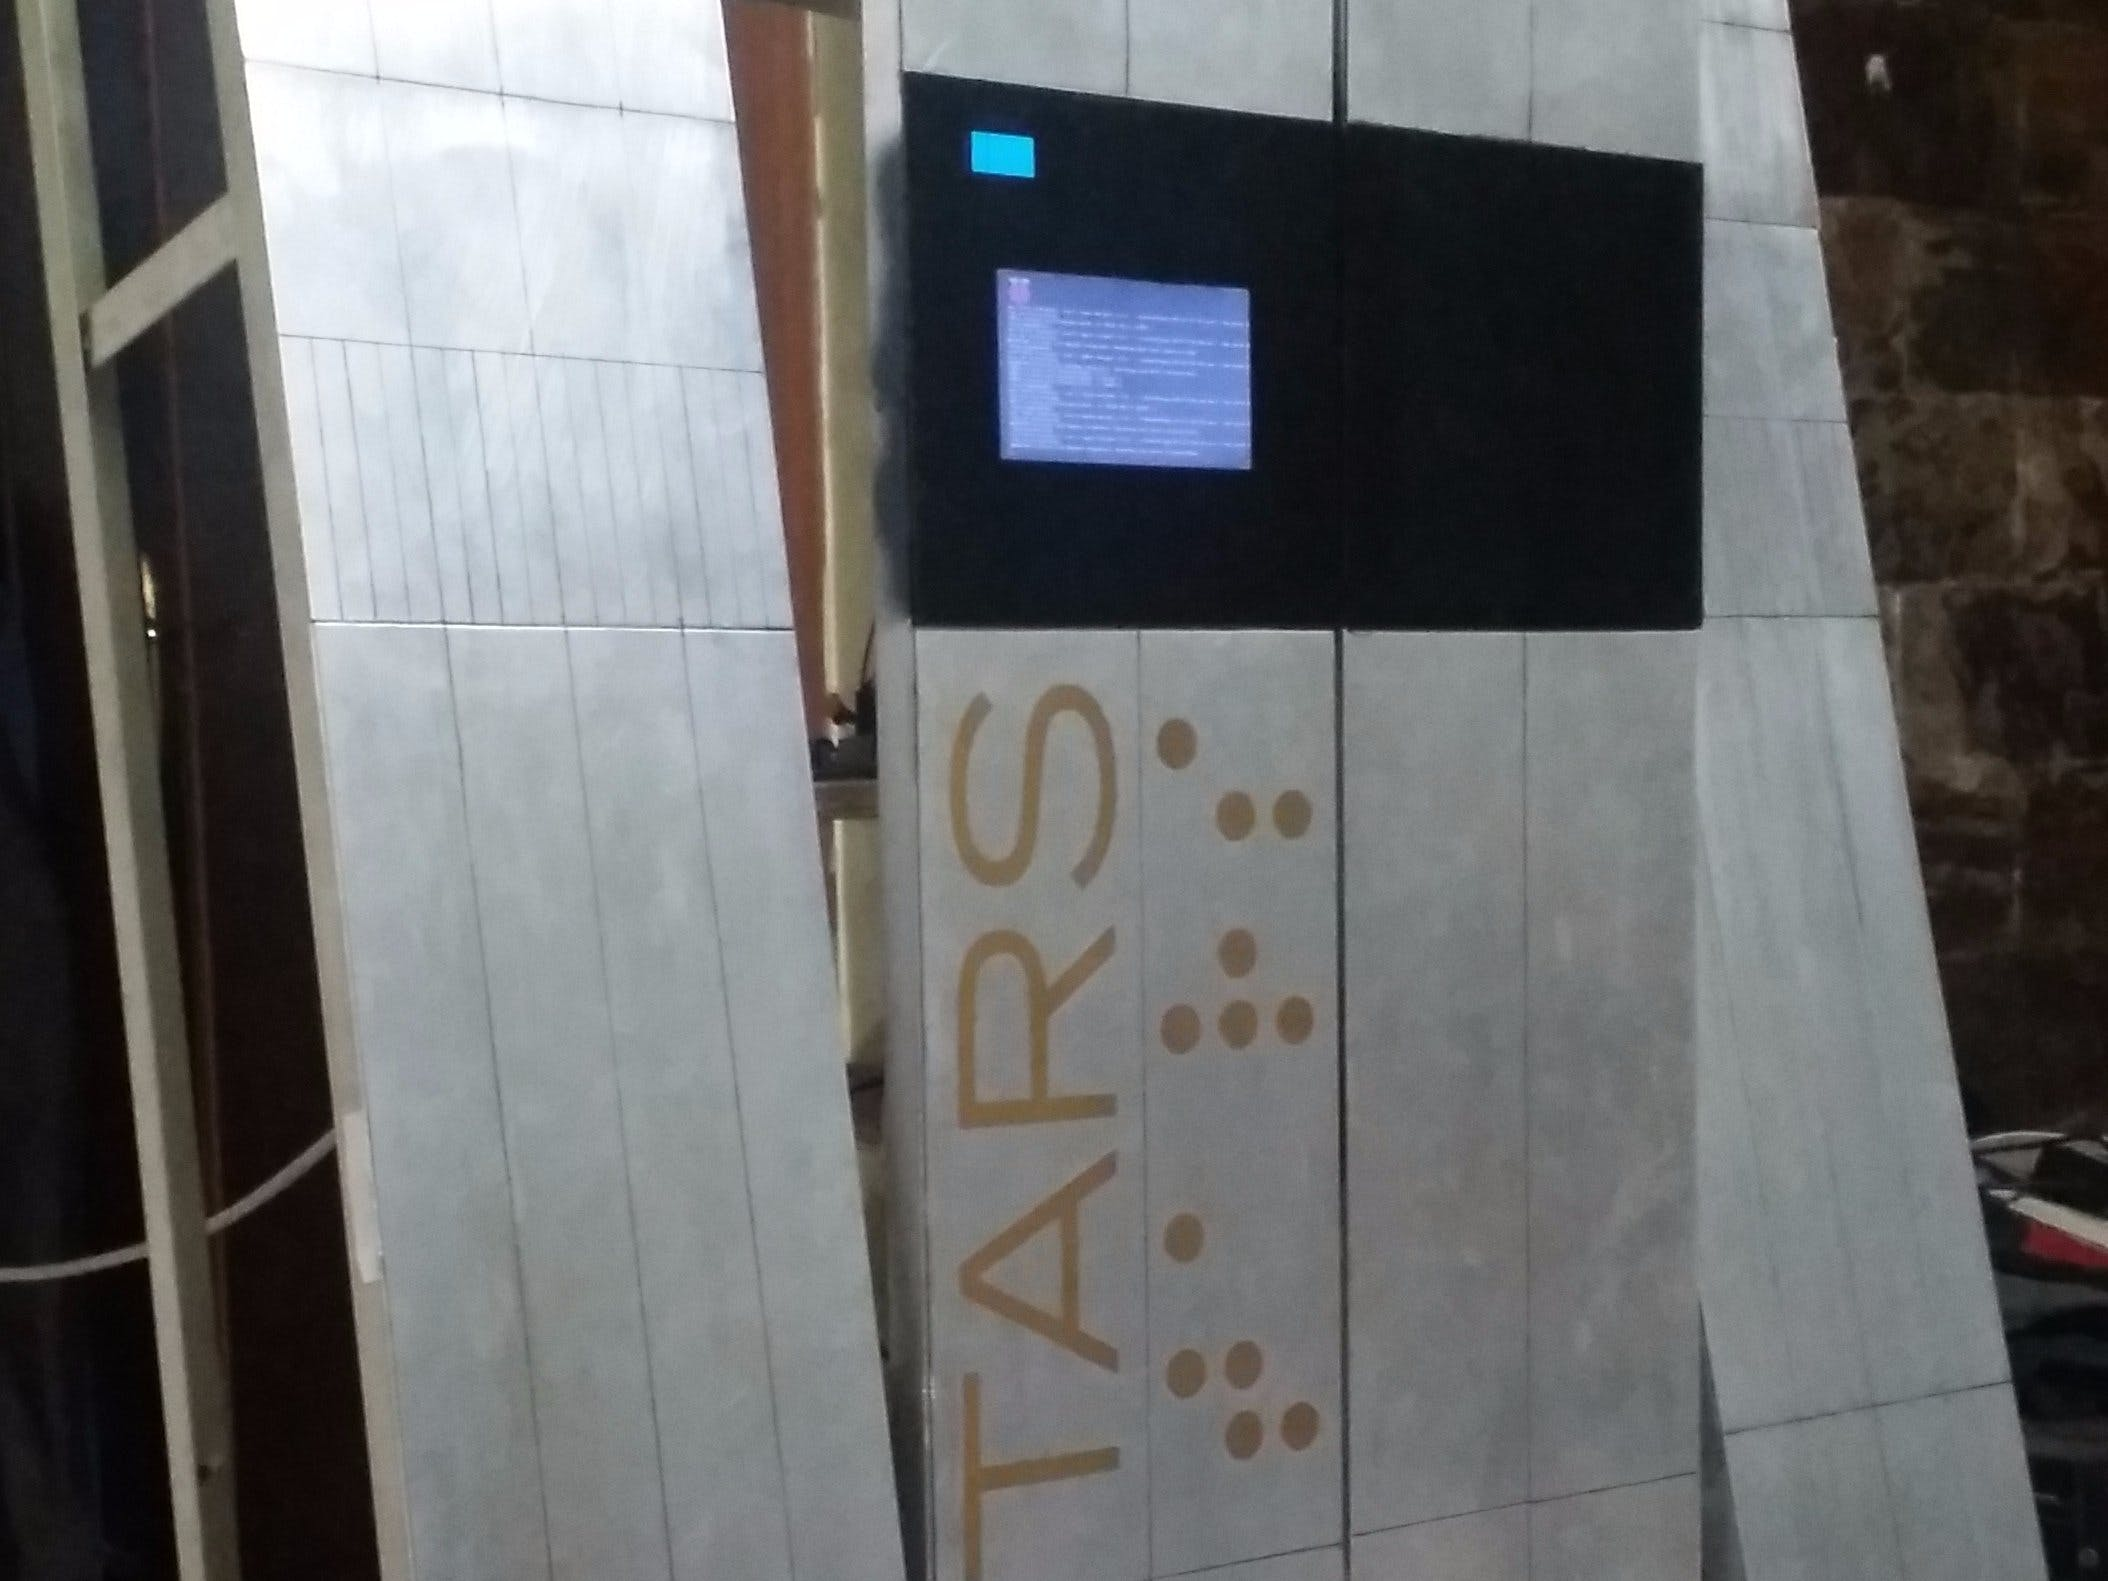 TARS: The robot from Interstellar movie